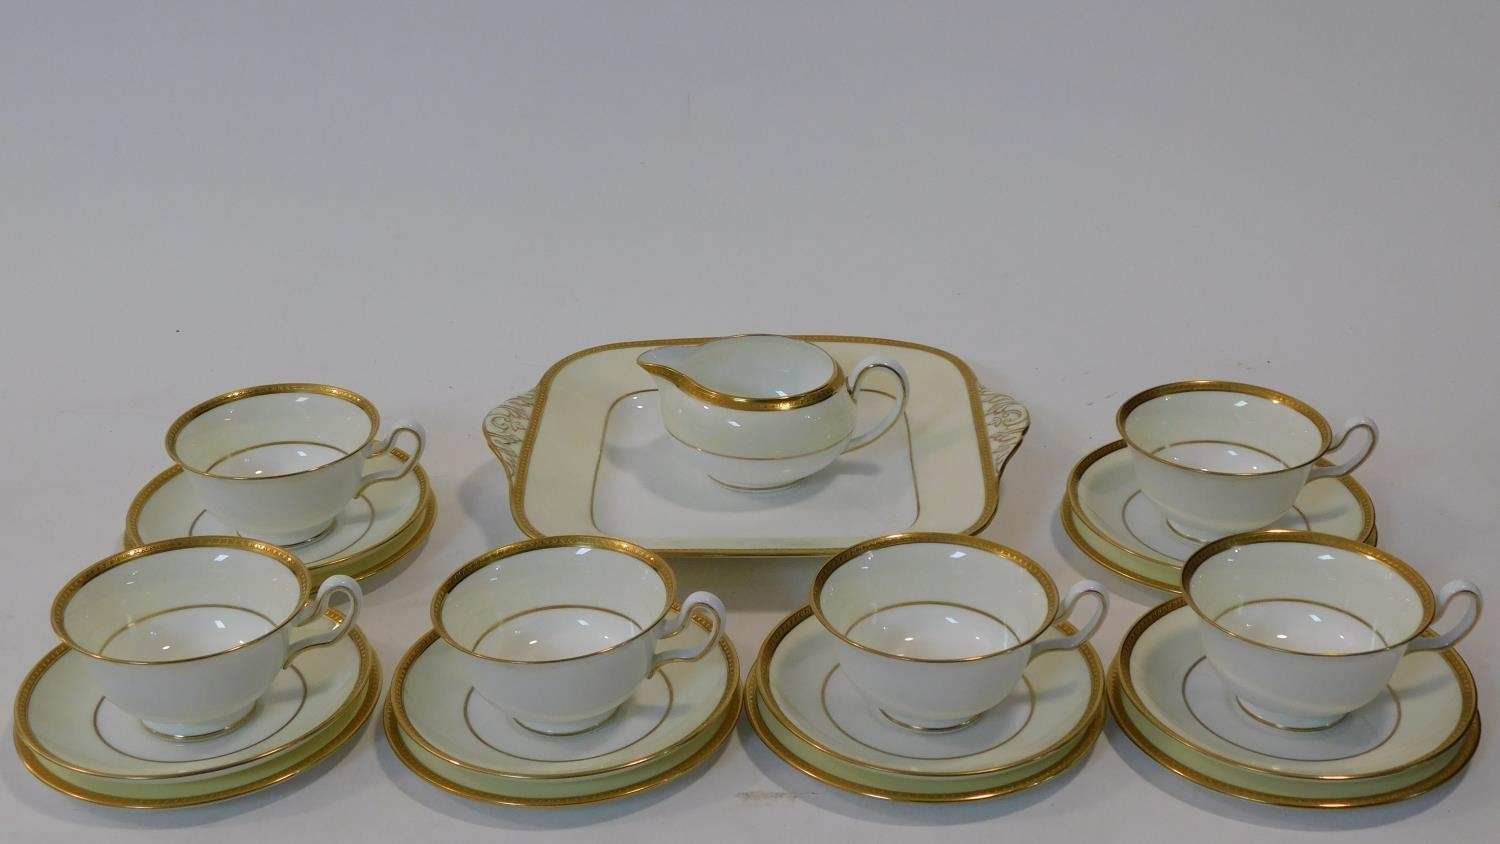 A six person part scrolling gilded design porcelain Wedgwood coffee set, pattern number W4249. - Image 2 of 12